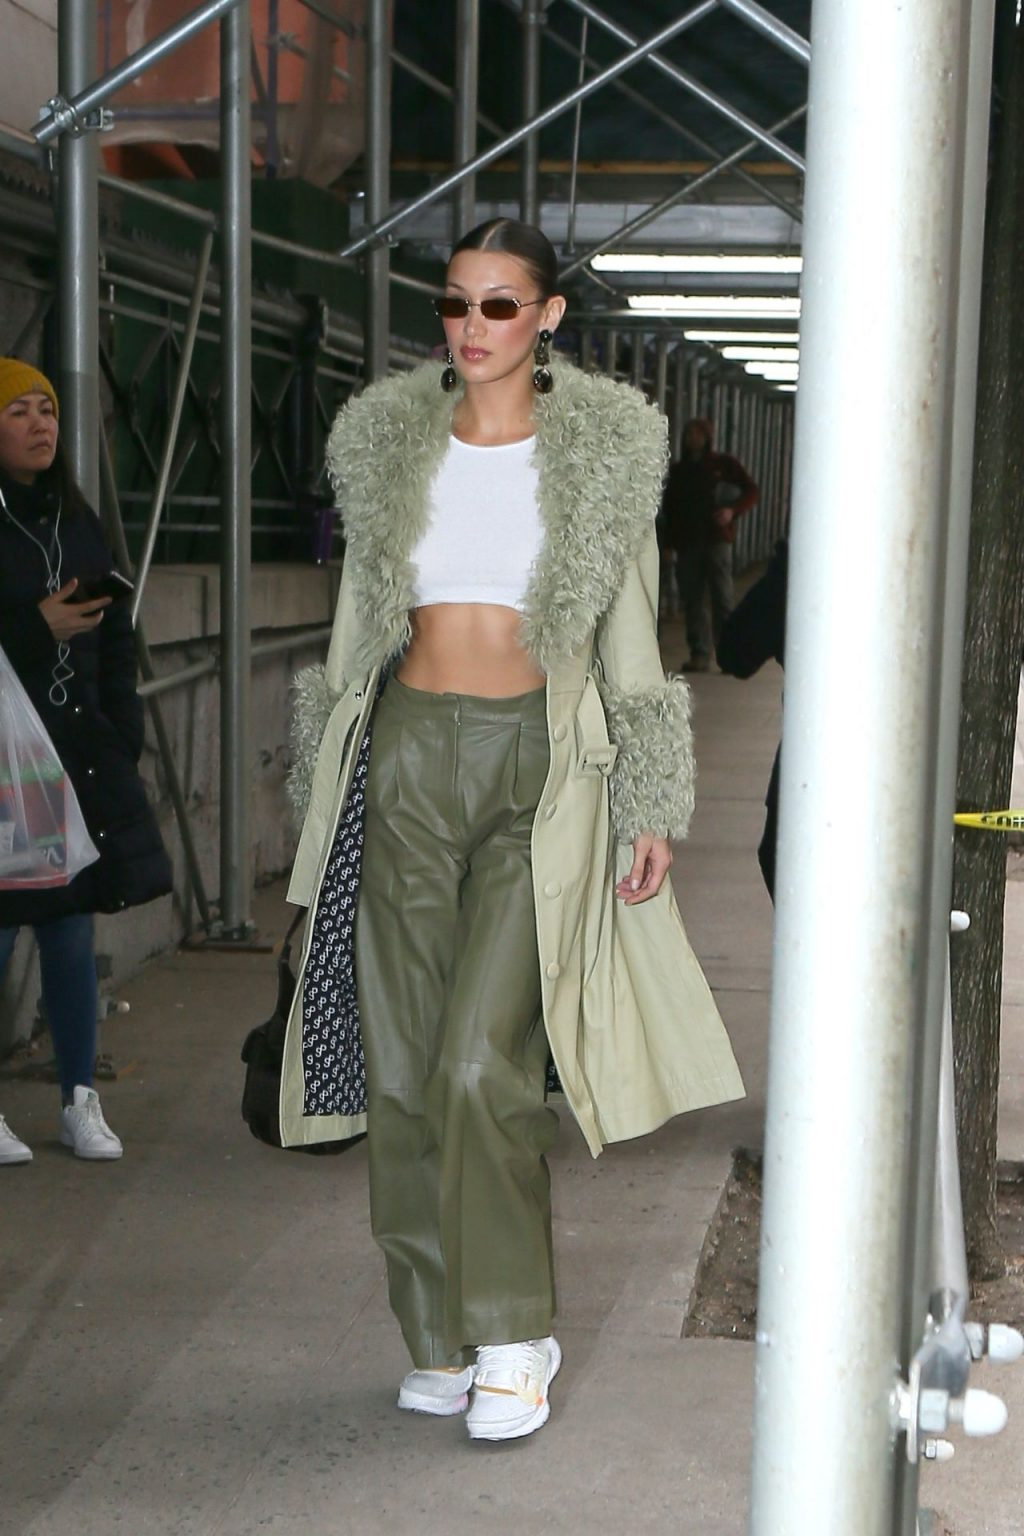 Bella Hadid See through The Fappening Blog 13 1024x1536 - Braless Bella Hadid Arrives at the Park Avenue Armory for the Marc Jacobs Fashion Show (59 Photos)